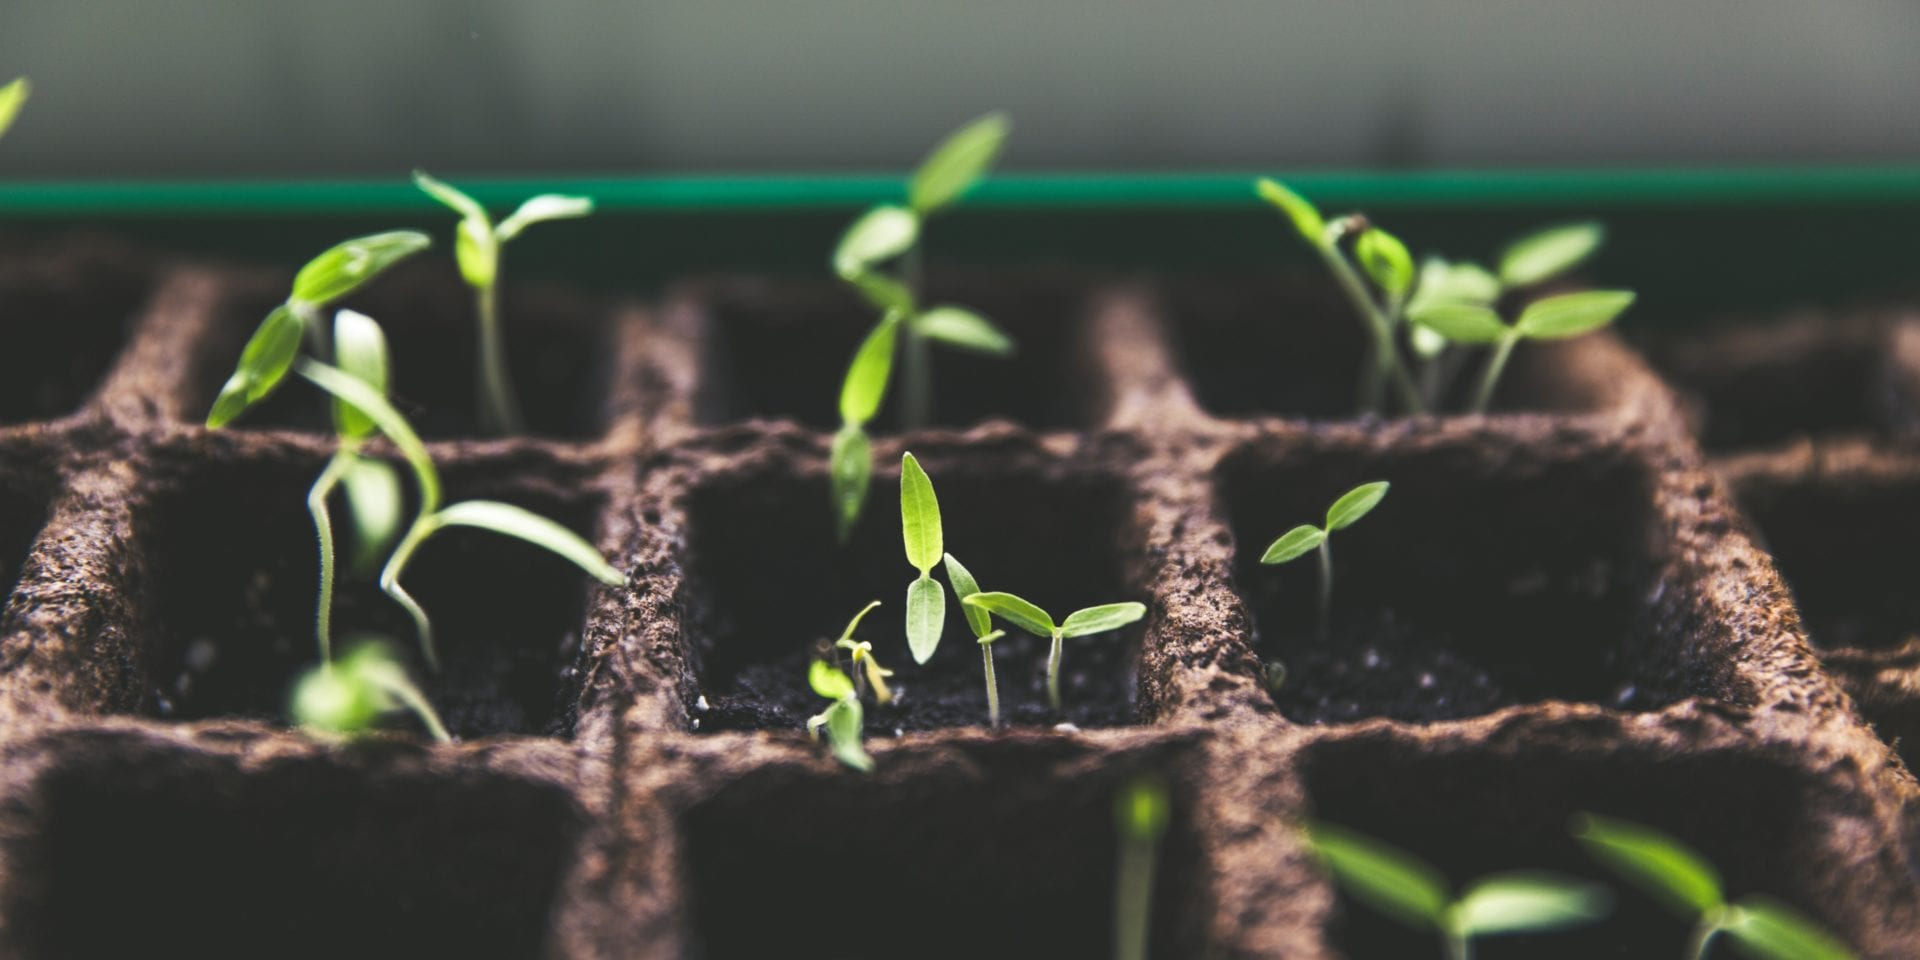 personal development plan - seedlings in a planting tray